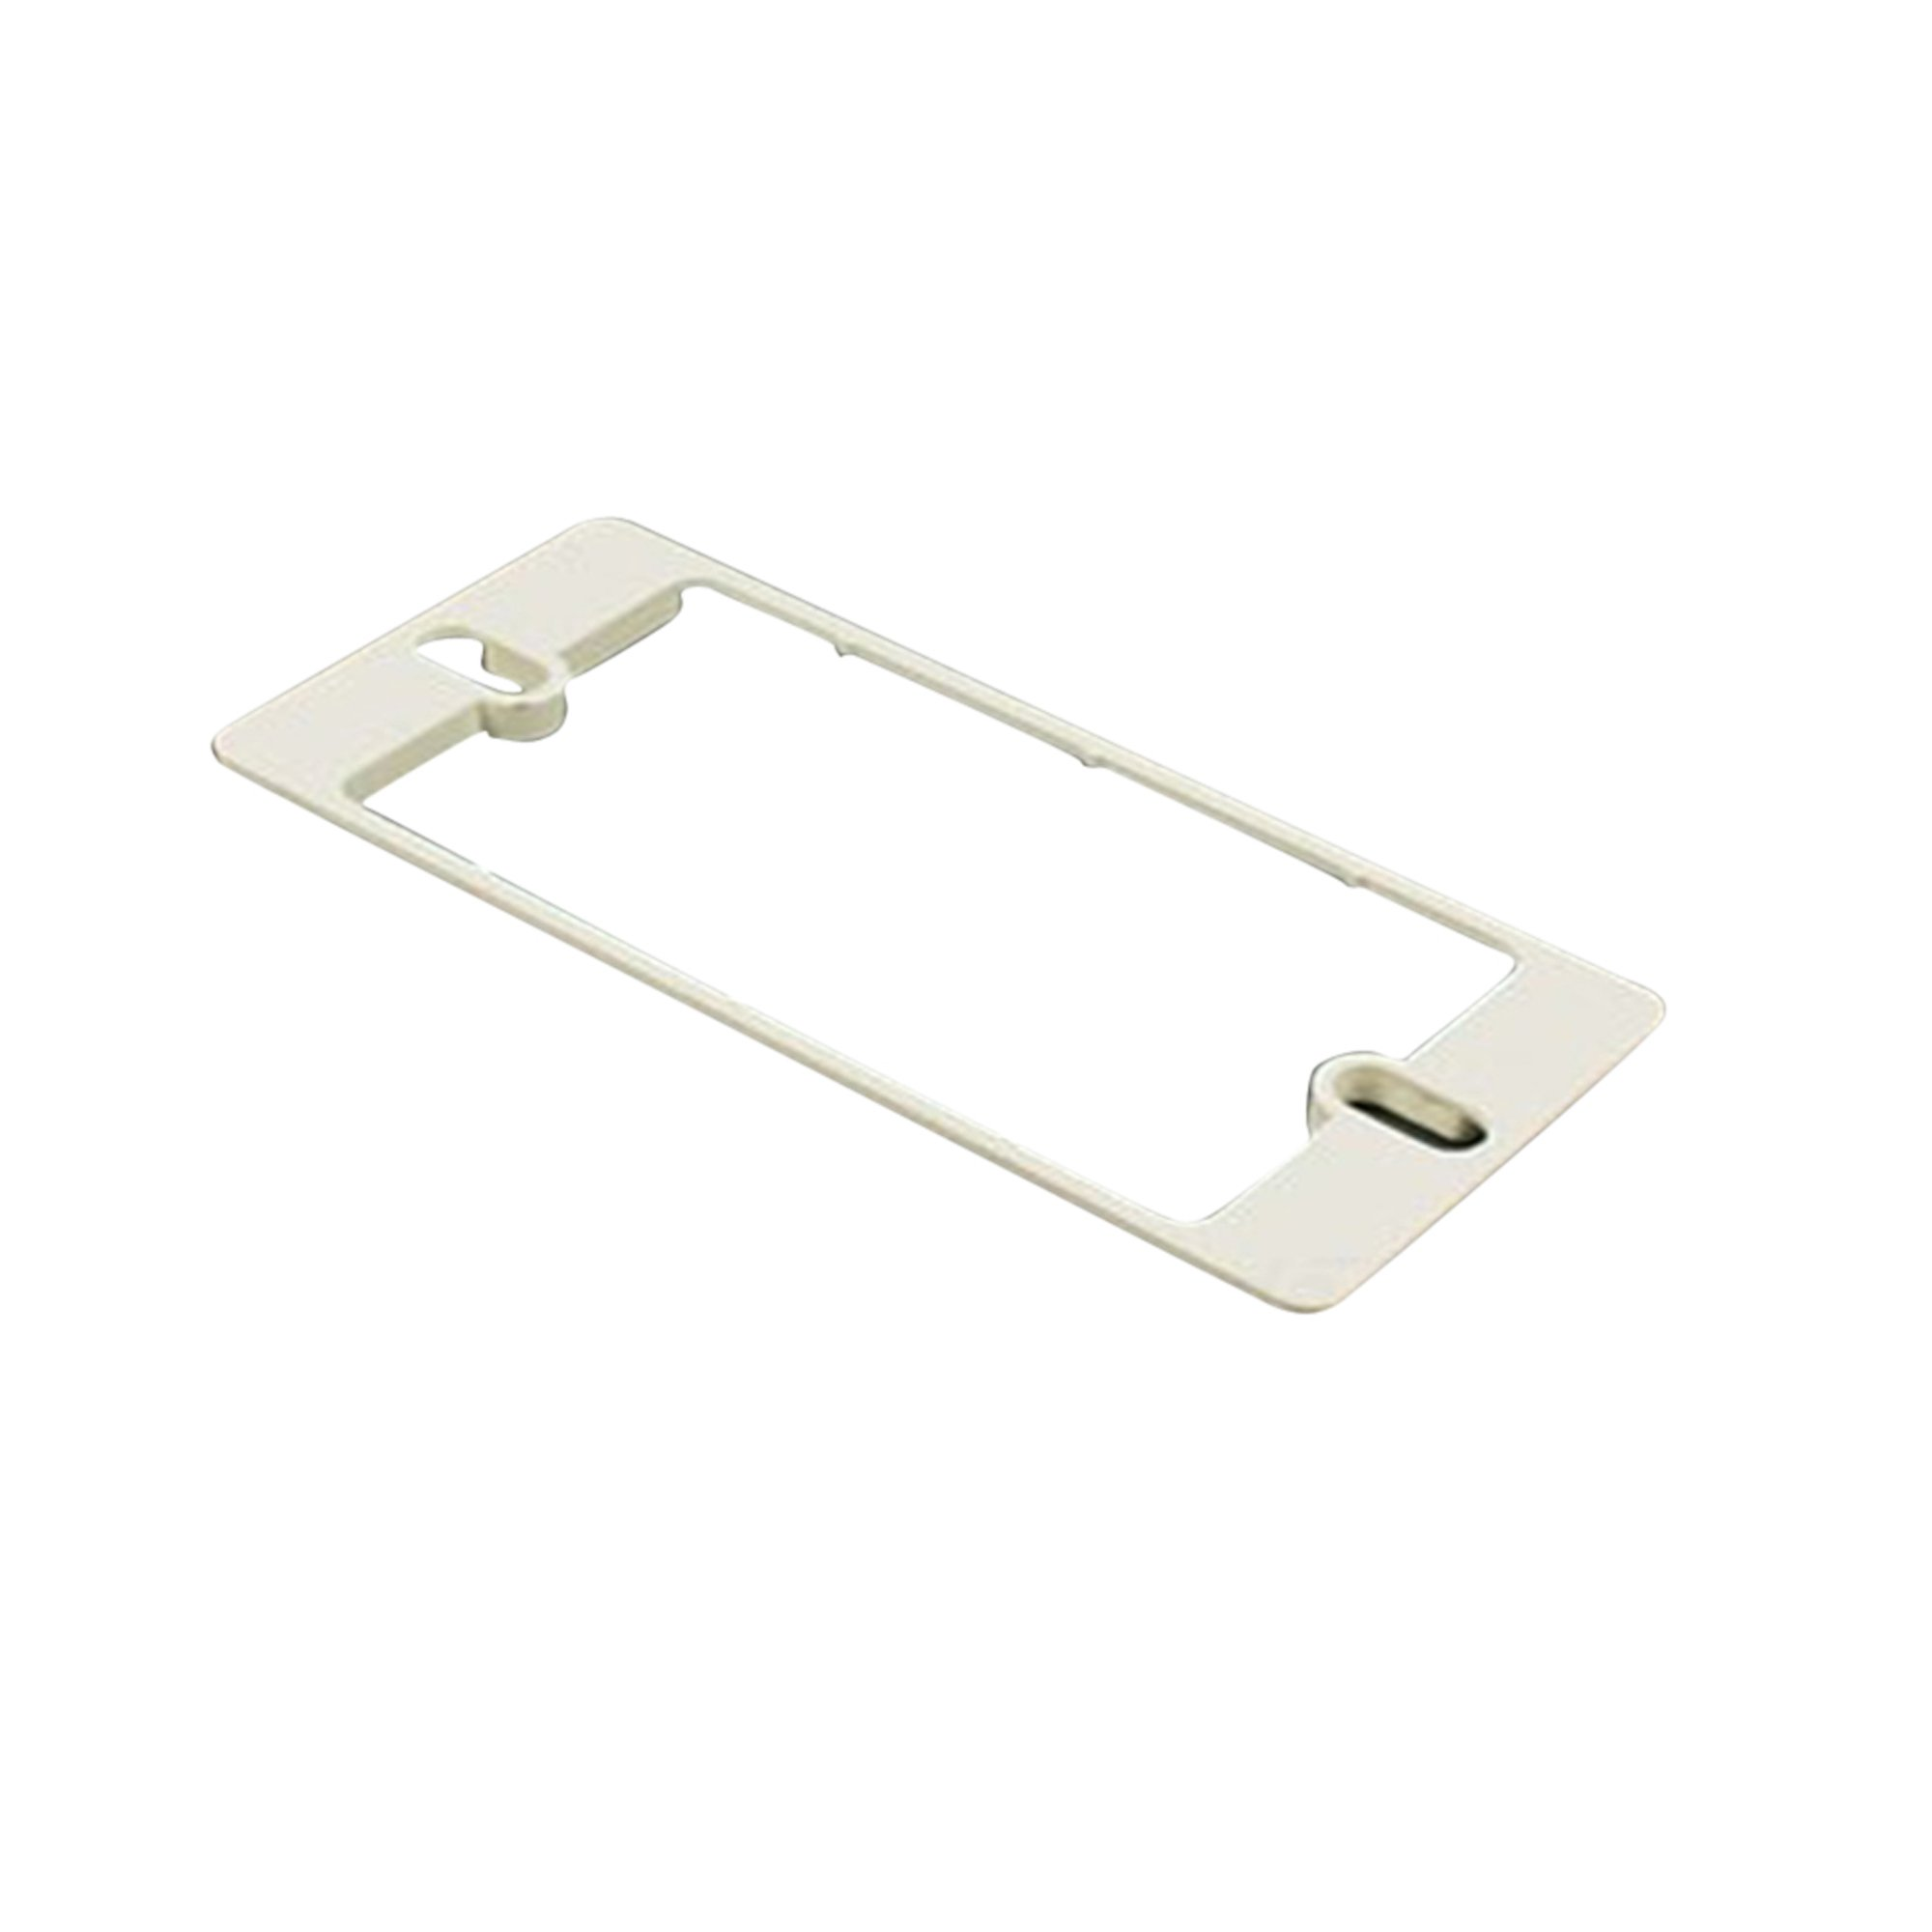 Wiremold 5507S Nm Spacer 5500 Series Mounts Standard Faceplates Ivory (5 Pack)